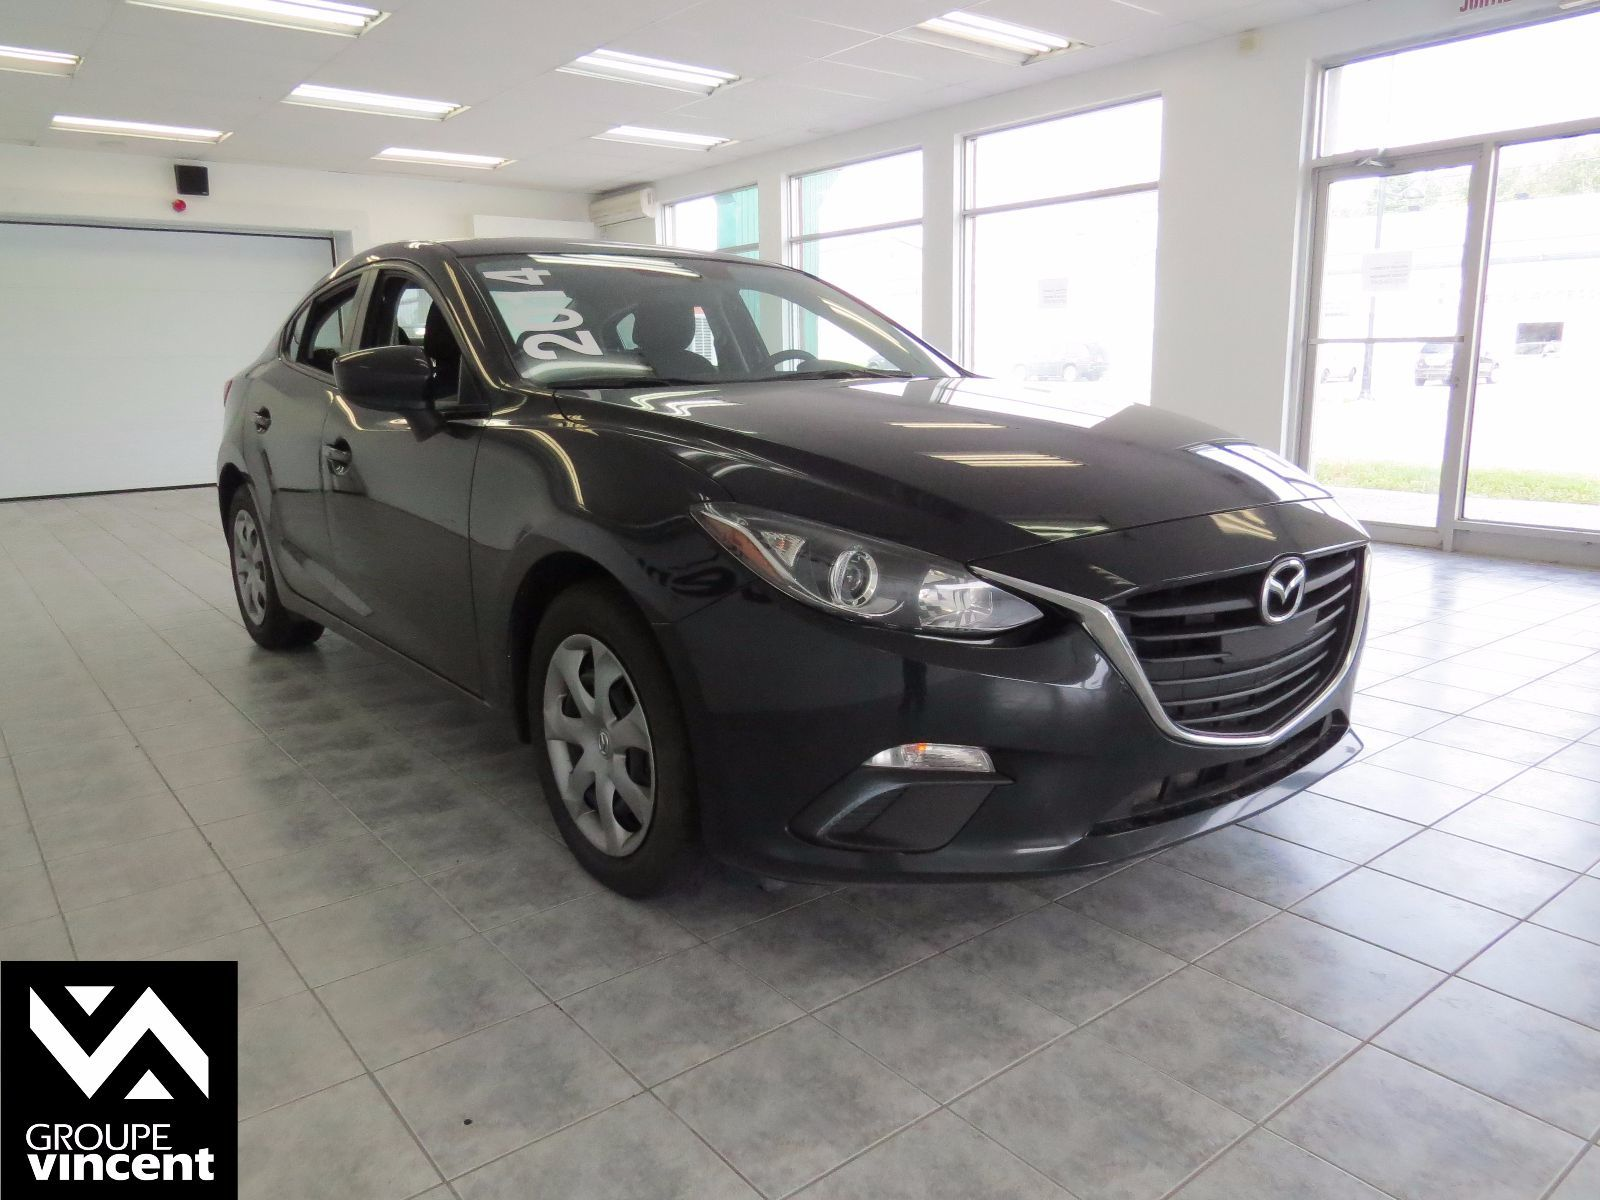 mazda 3 gx sky bluetooth 2014 d 39 occasion trois rivi res hyundai trois rivi res ll4407av. Black Bedroom Furniture Sets. Home Design Ideas